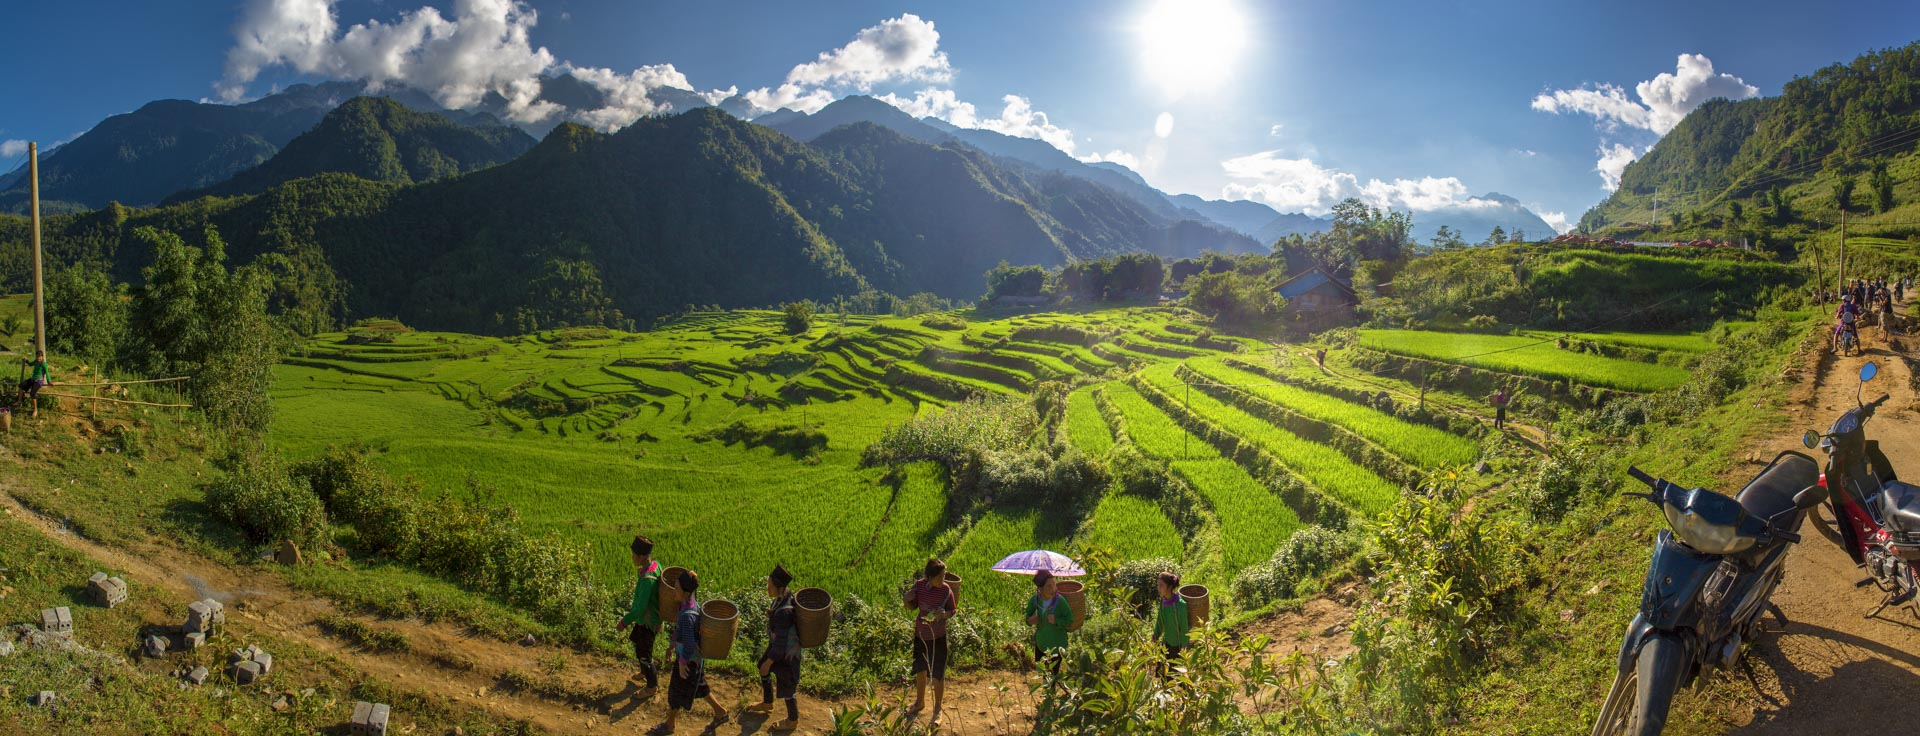 Rice paddies in the mountain valleys around Sa Pa. Vietnam